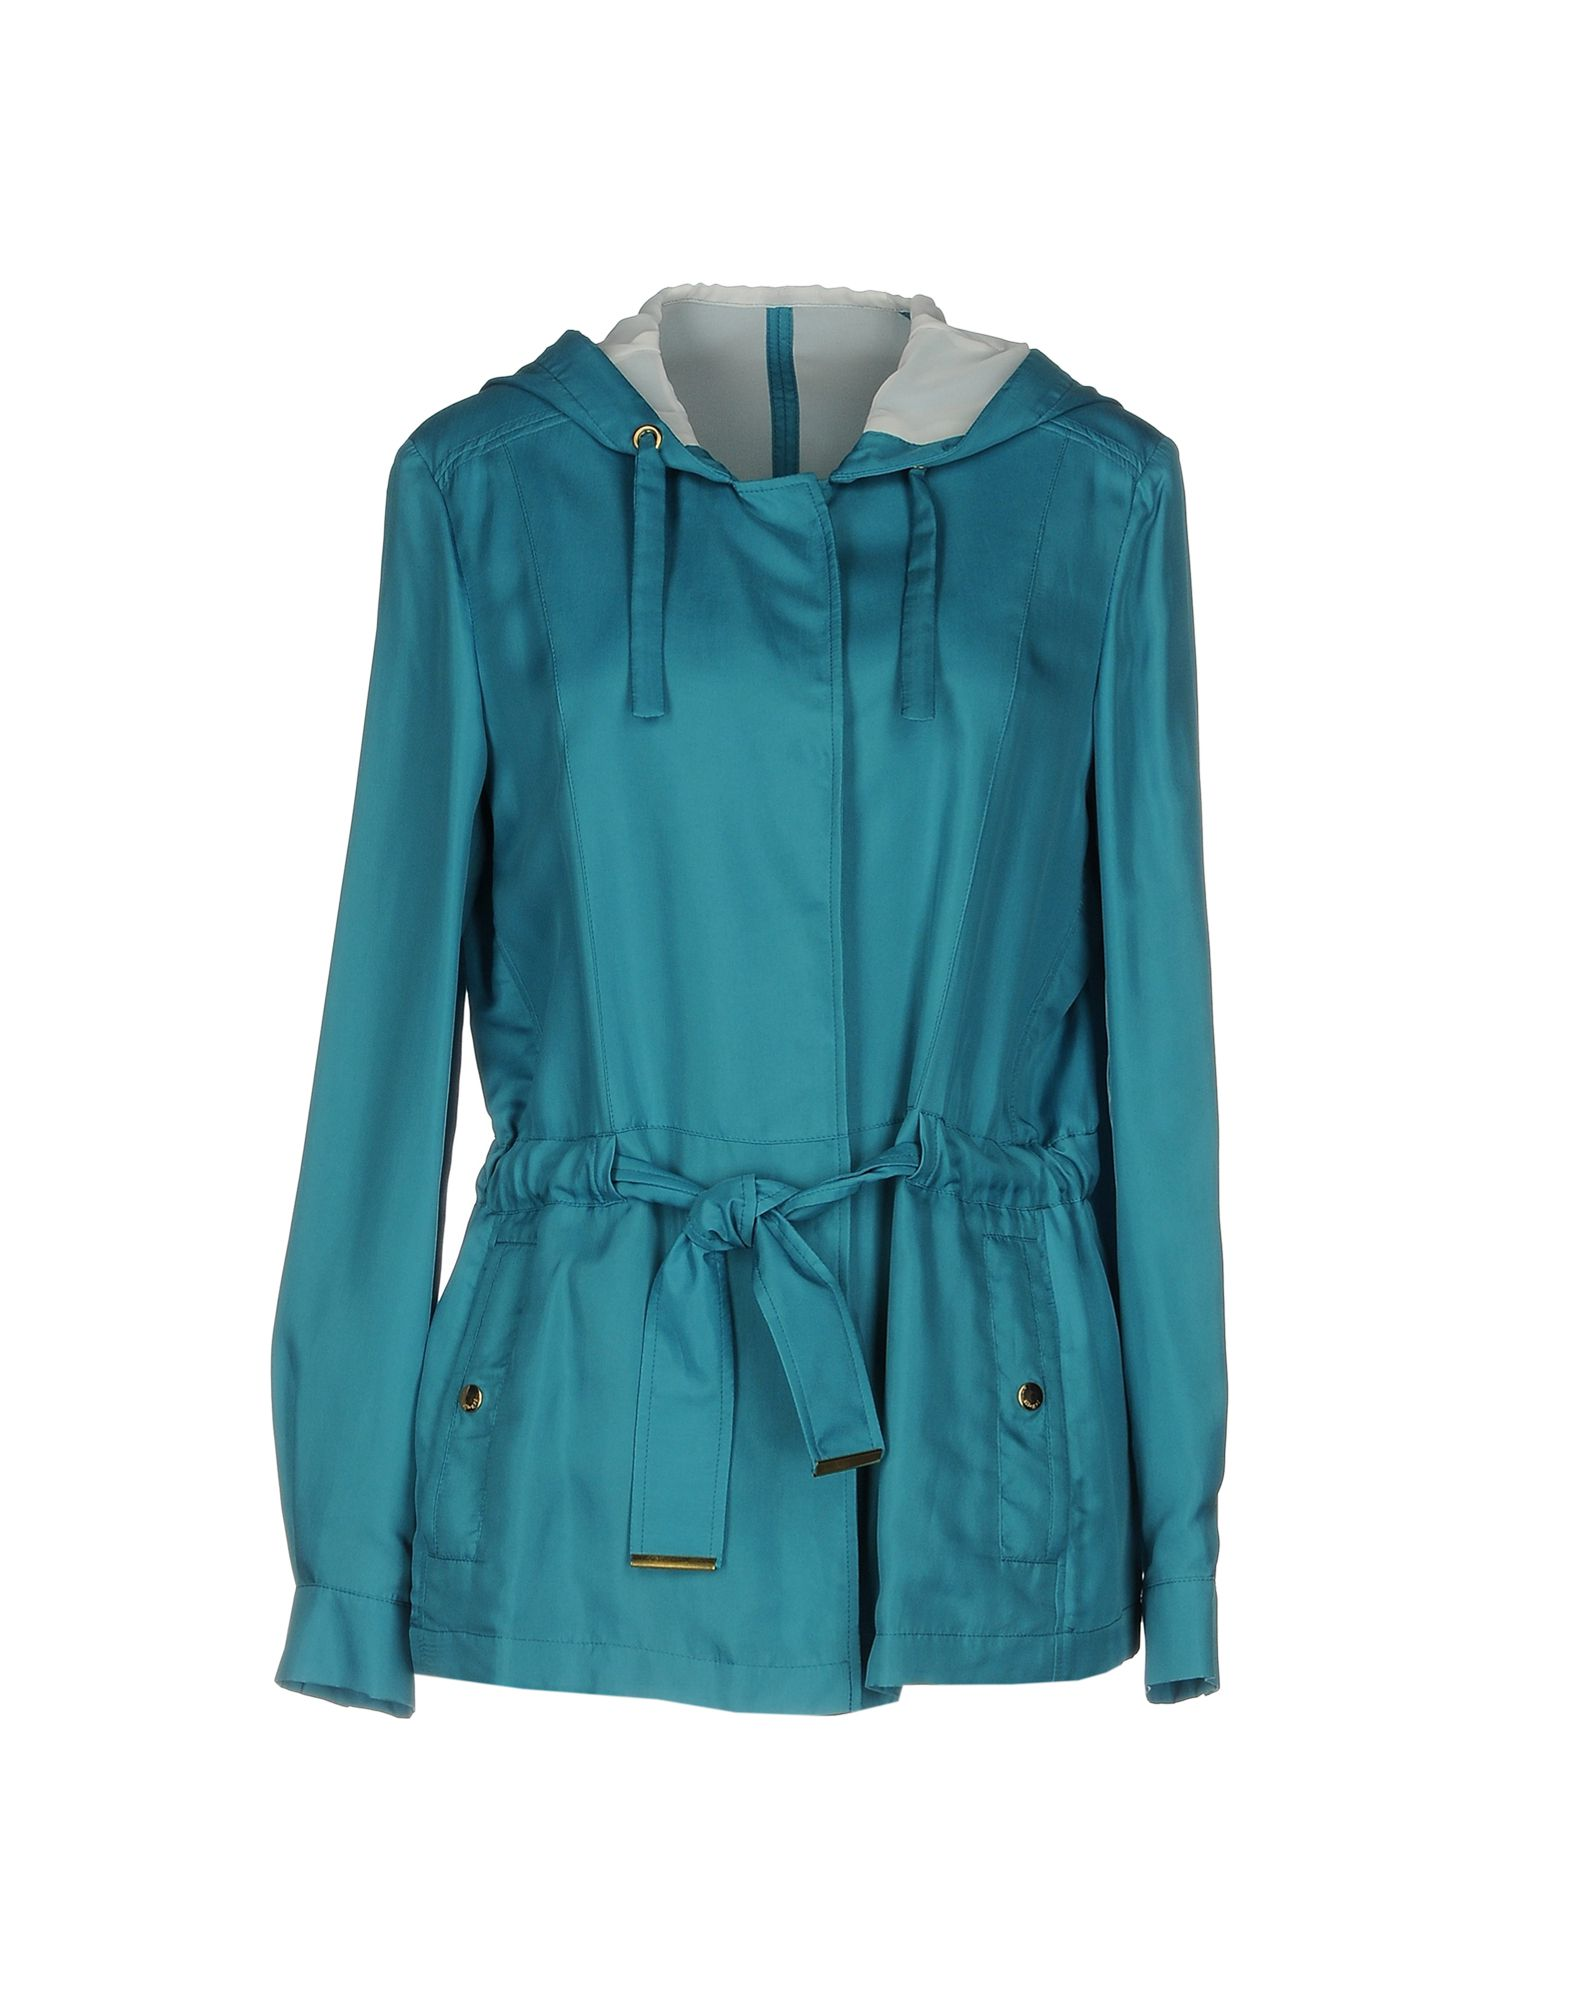 ALLEGRI Jacket in Turquoise